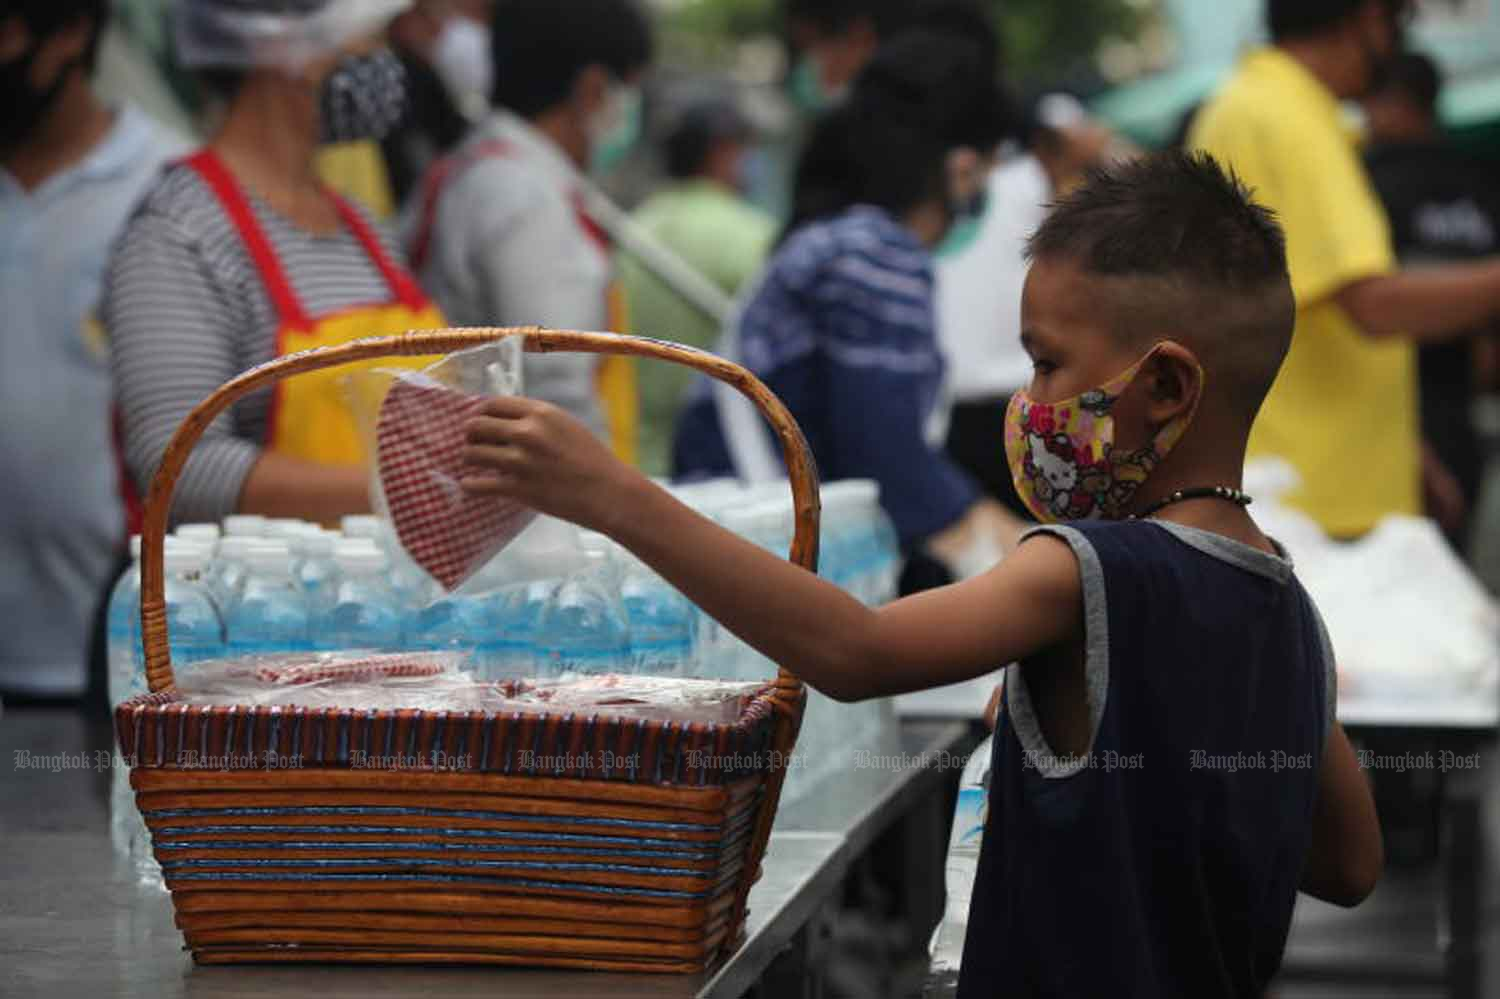 The child picks a face mask from a basketful distributed by the Bangkok Metropolitan Administration in Klong Toey district on Wednesday. (Photo: Arnun Chonmahatrakool)